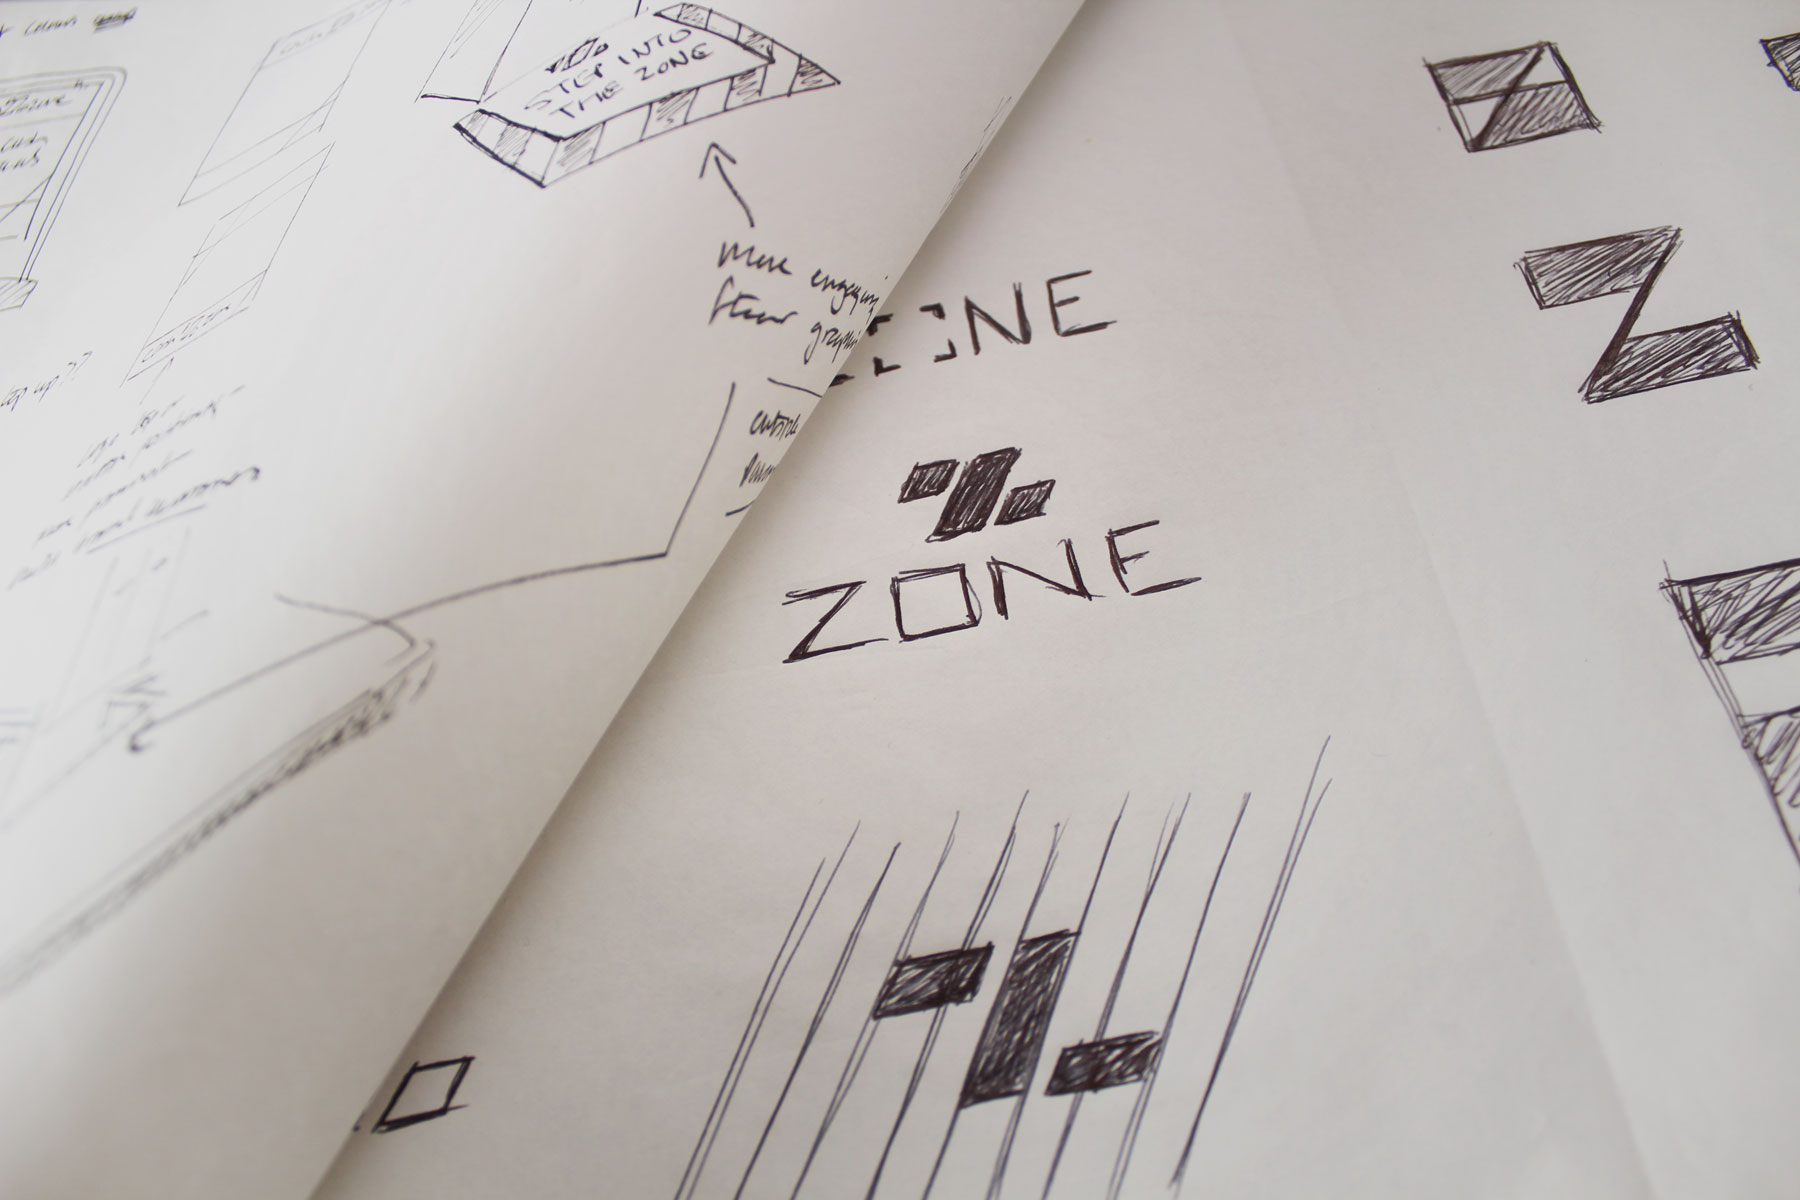 The patterning of the key idea enabled us to harness the geometry to form a Z icon.